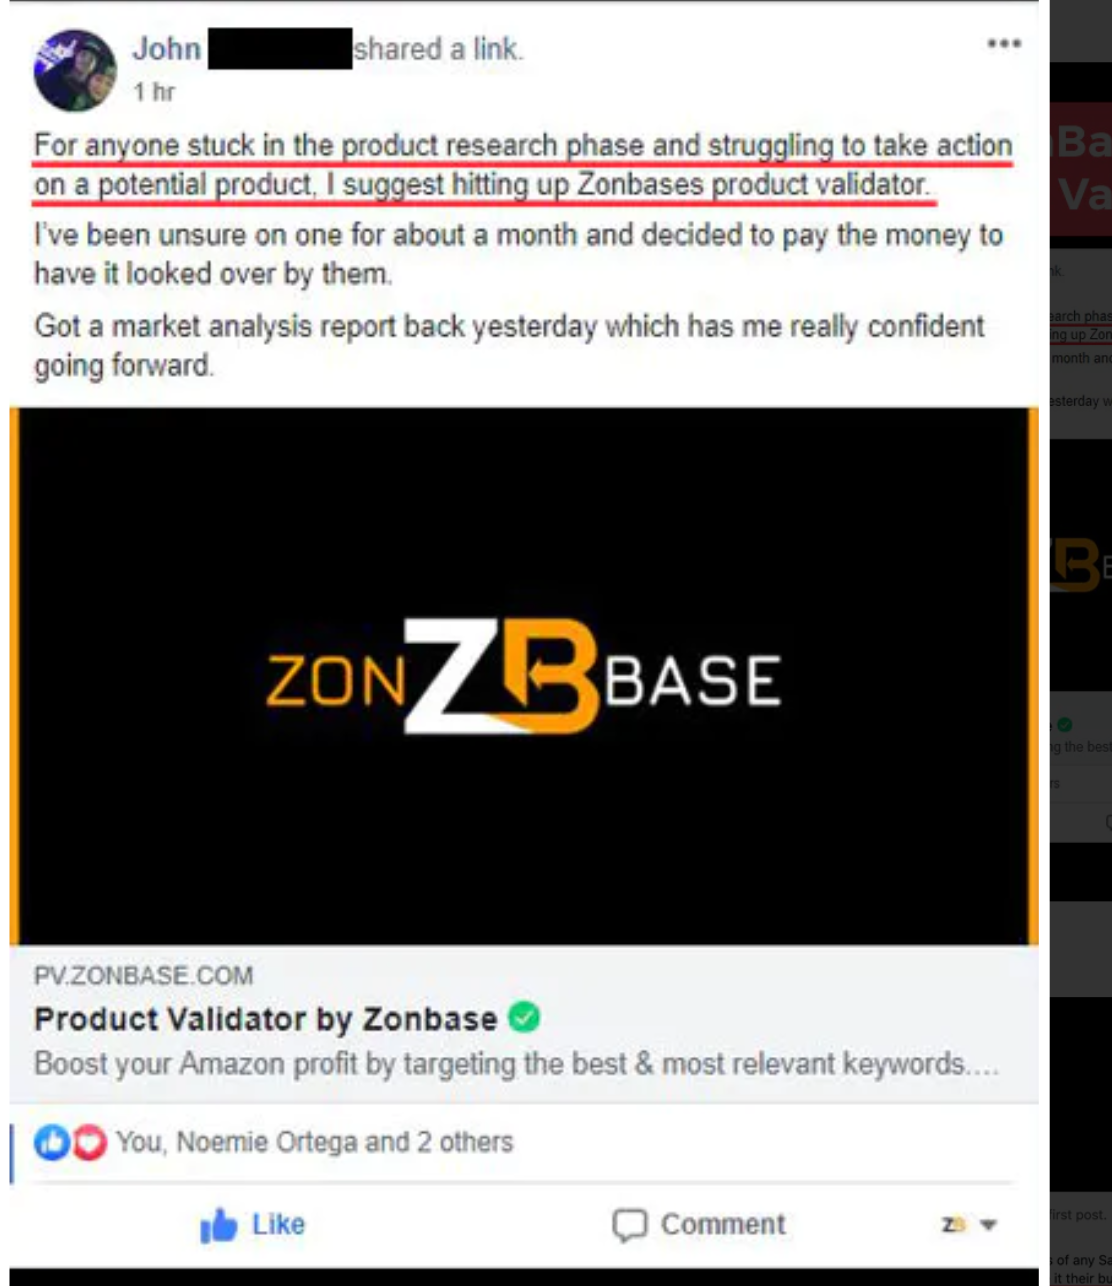 Zonbase products